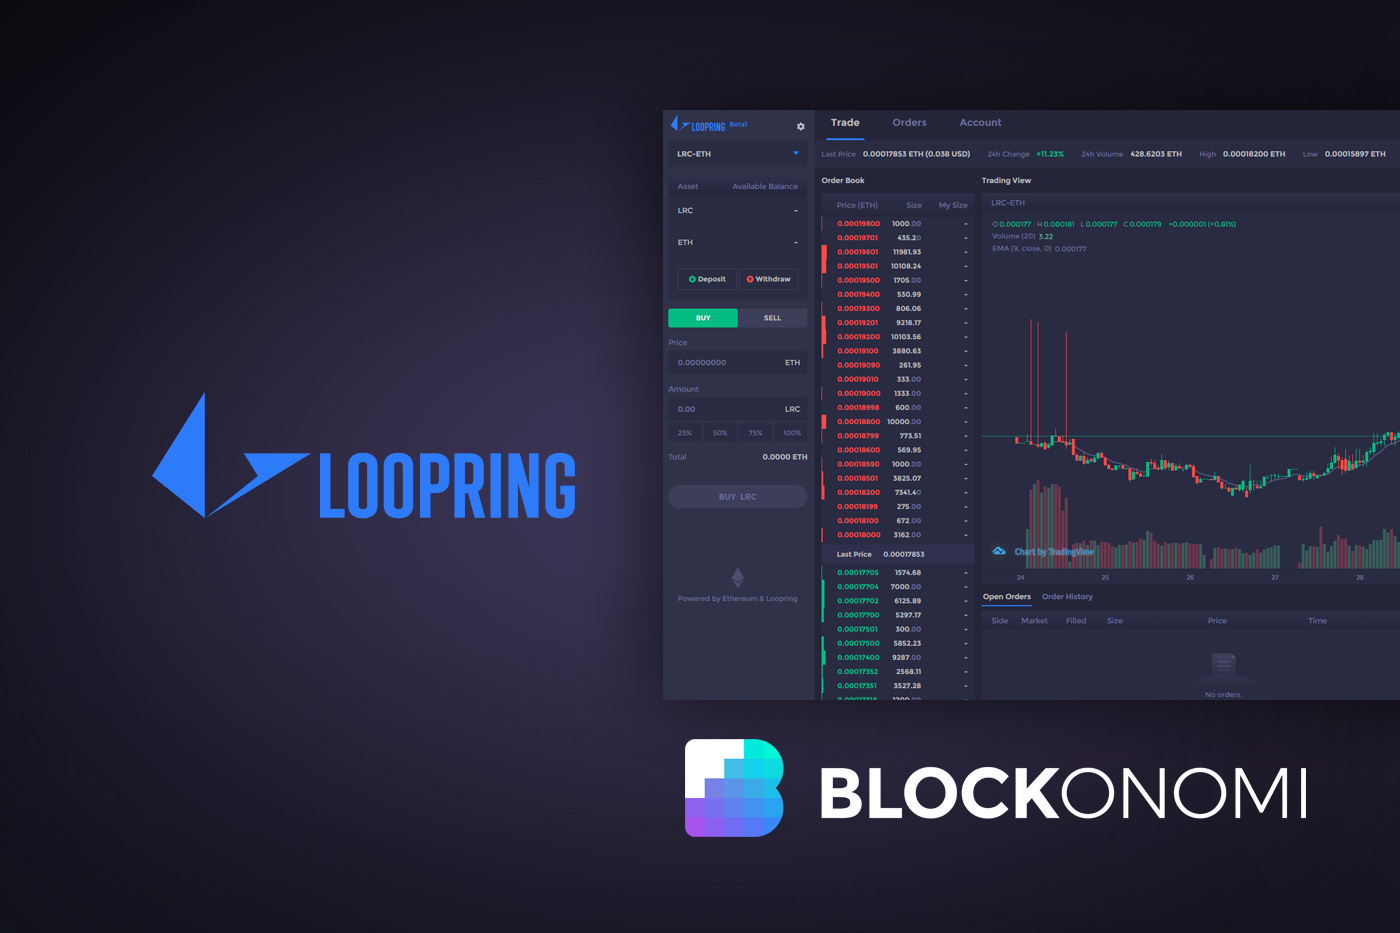 Loopring Exchange: The First ZK-Rollup Exchange Now Live on Ethereum